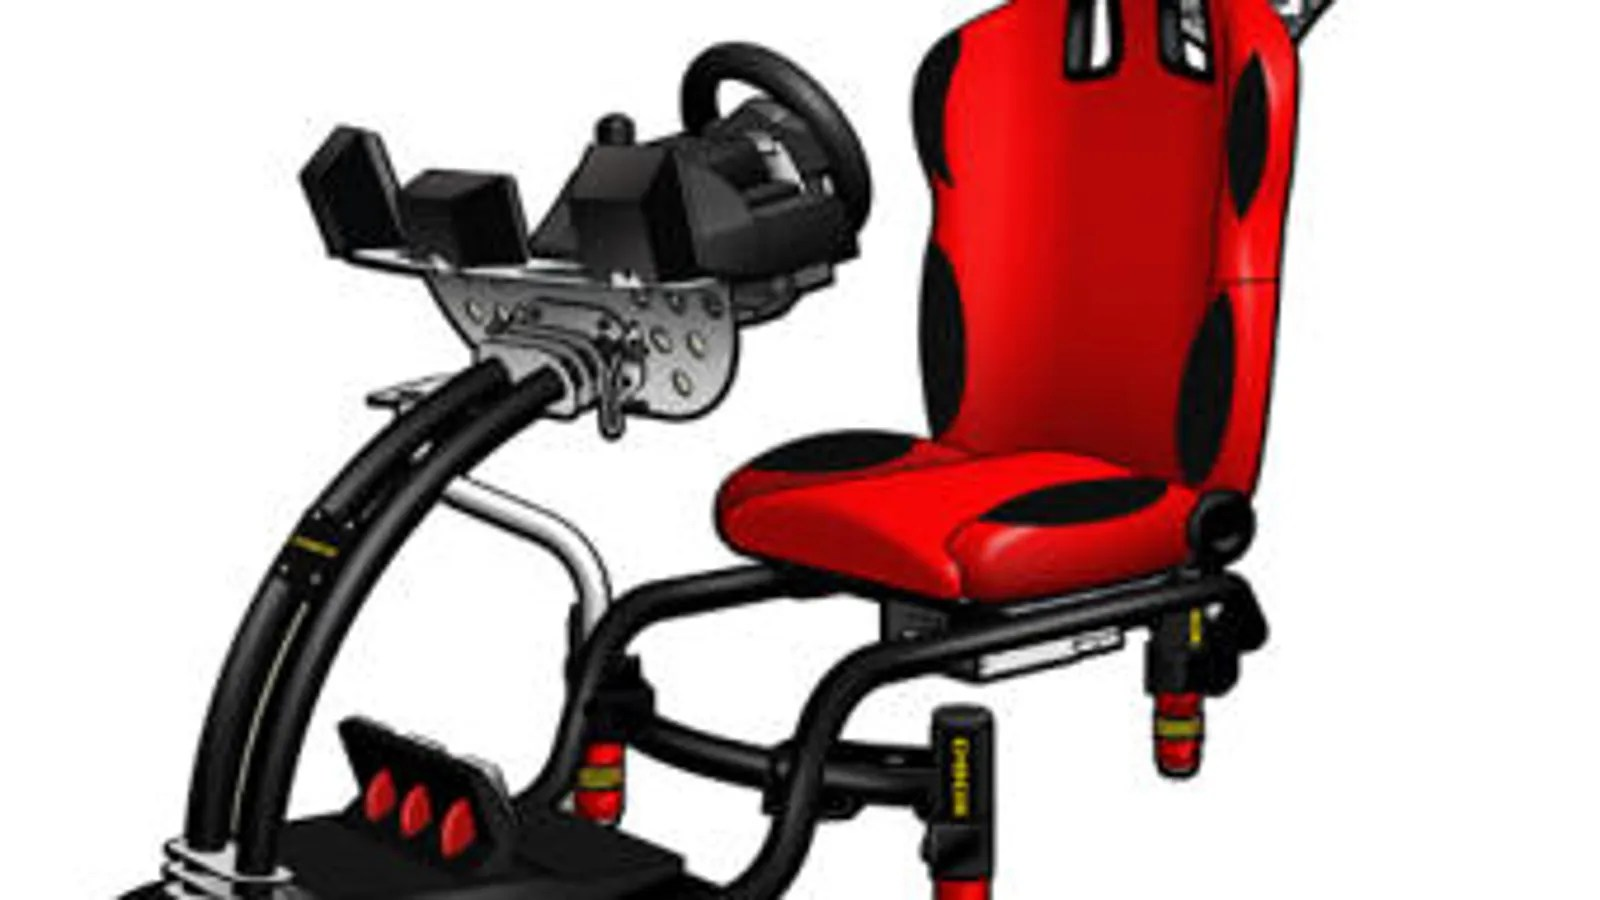 hydraulic racing simulator chair thomasville windsor d box gp 200 game seat costs a fortune